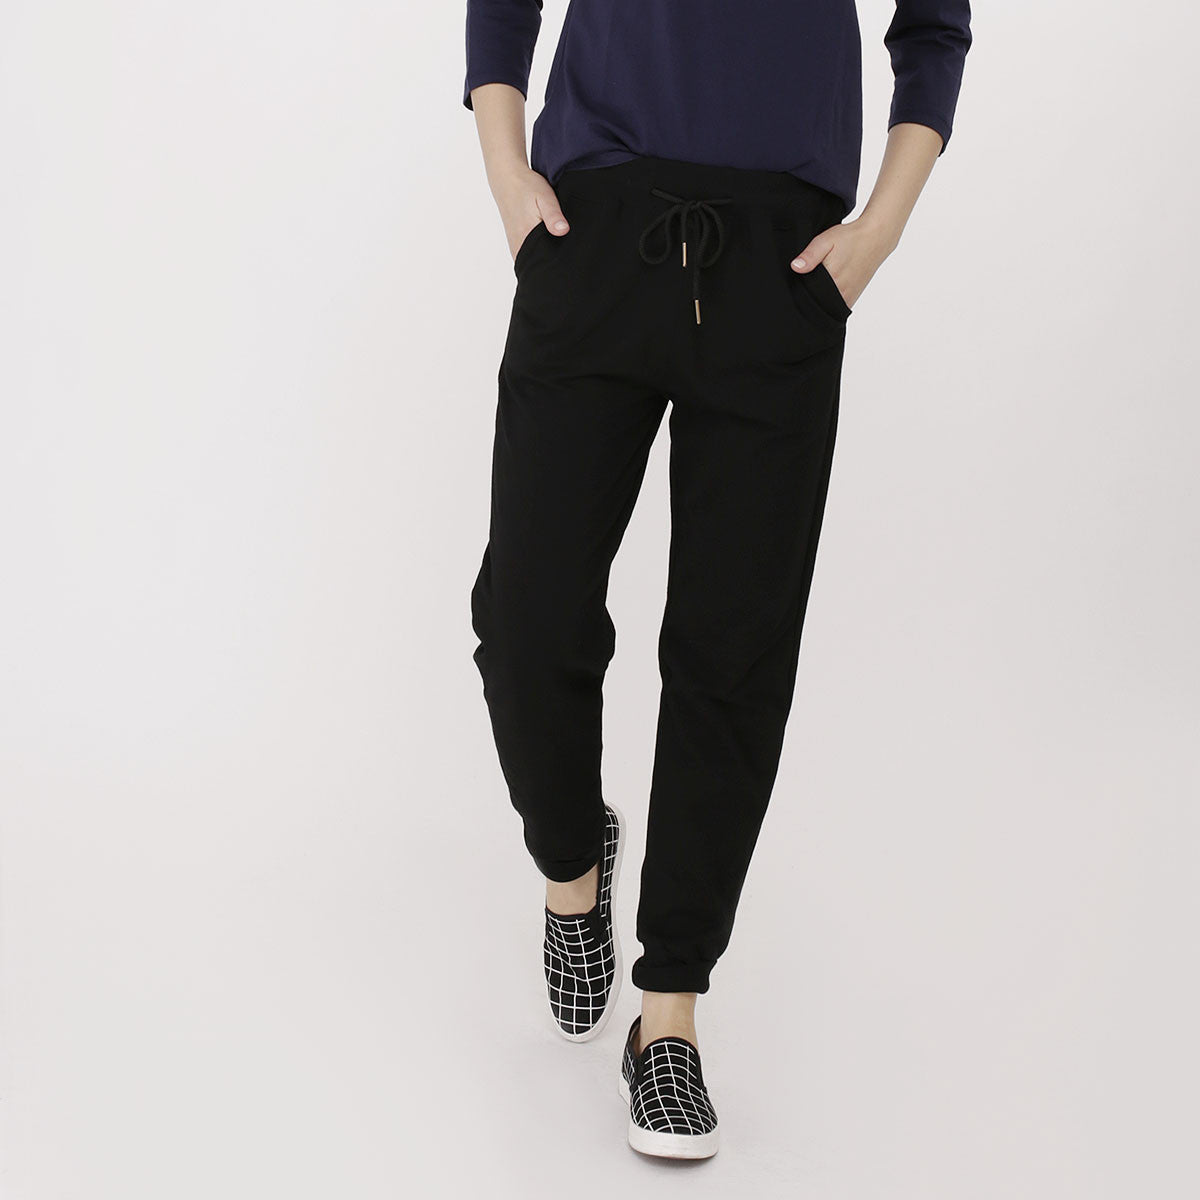 Black Basic Sweatpants